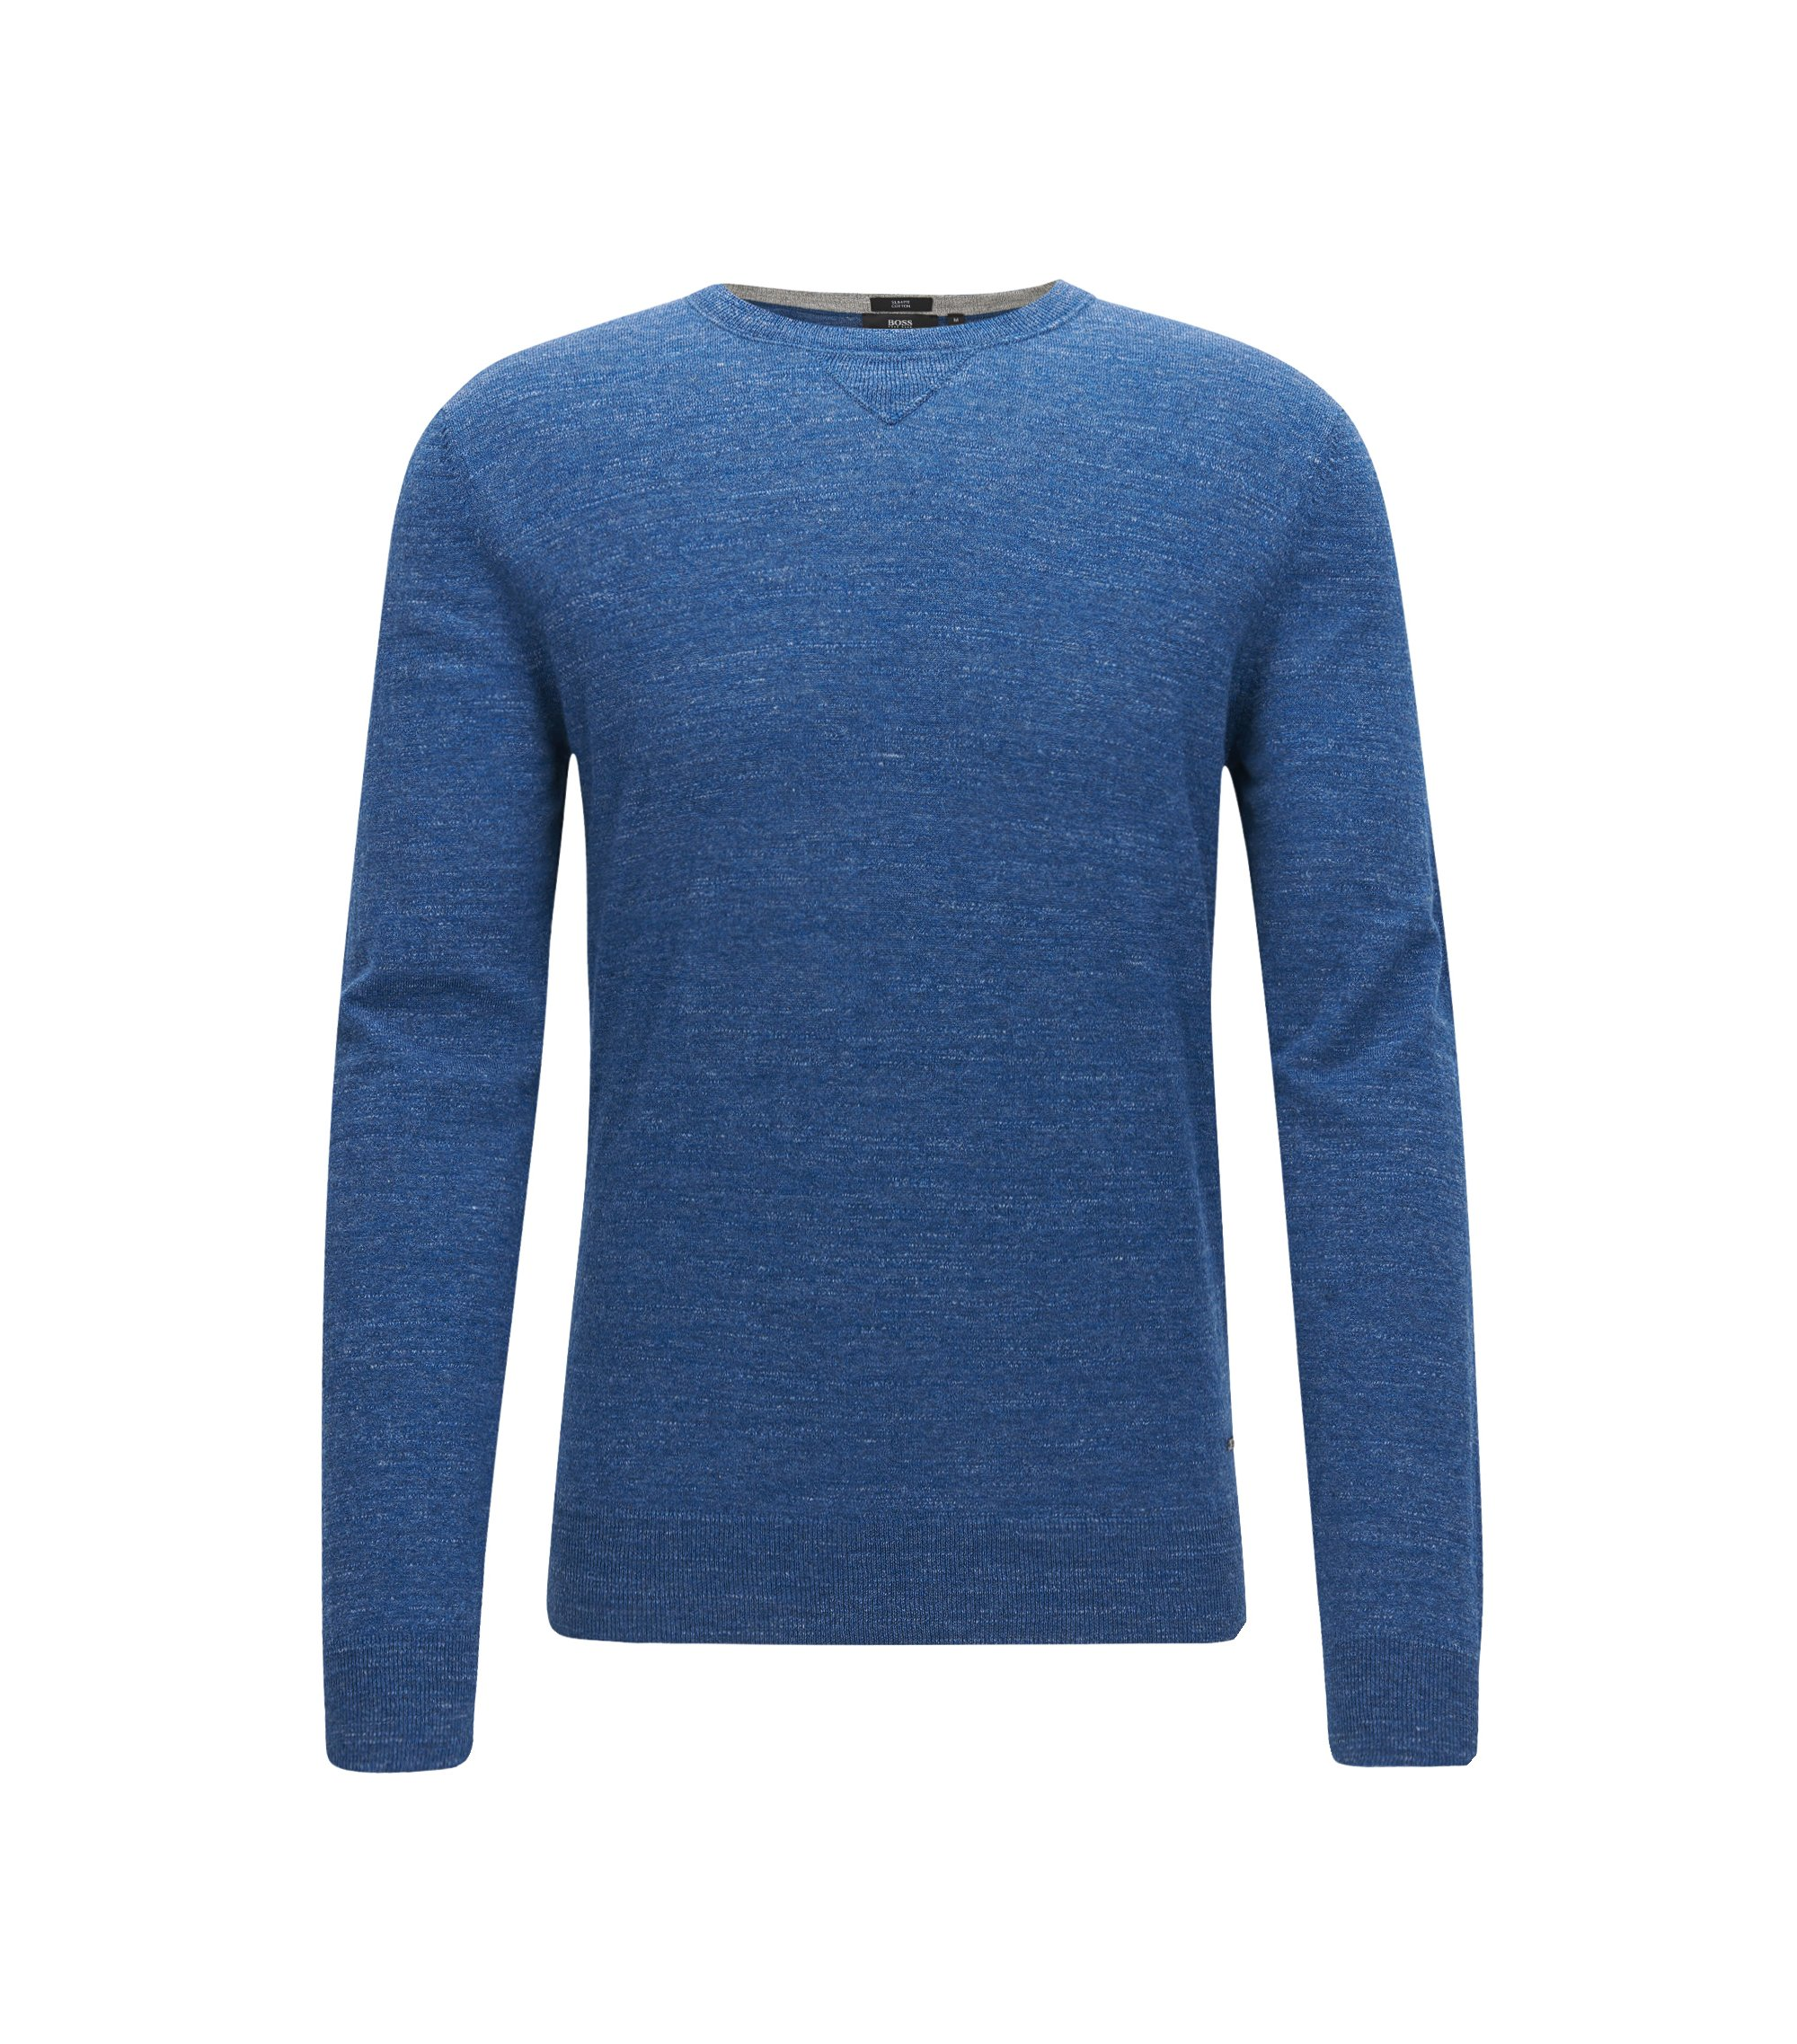 Slim-fit sweater in knitted cotton jersey, Blue